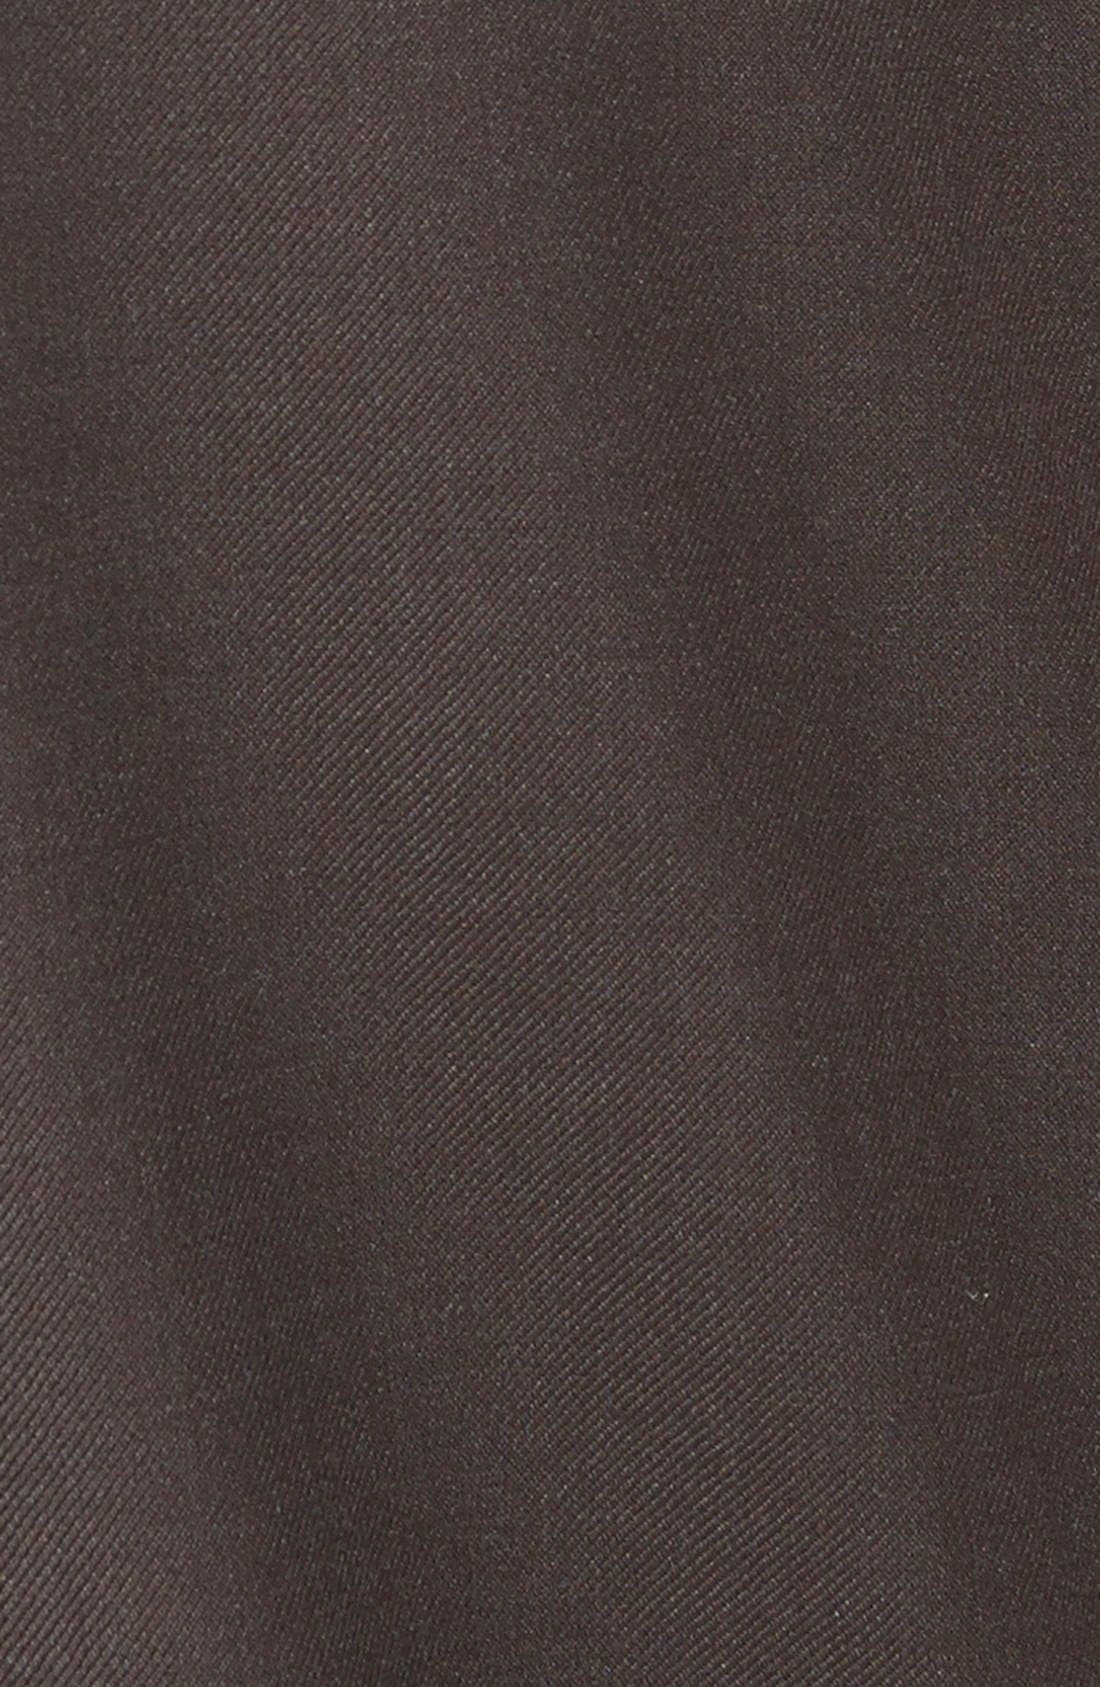 'Luxury Serge' Double Pleated Wool Trousers,                             Alternate thumbnail 2, color,                             ESPRESSO